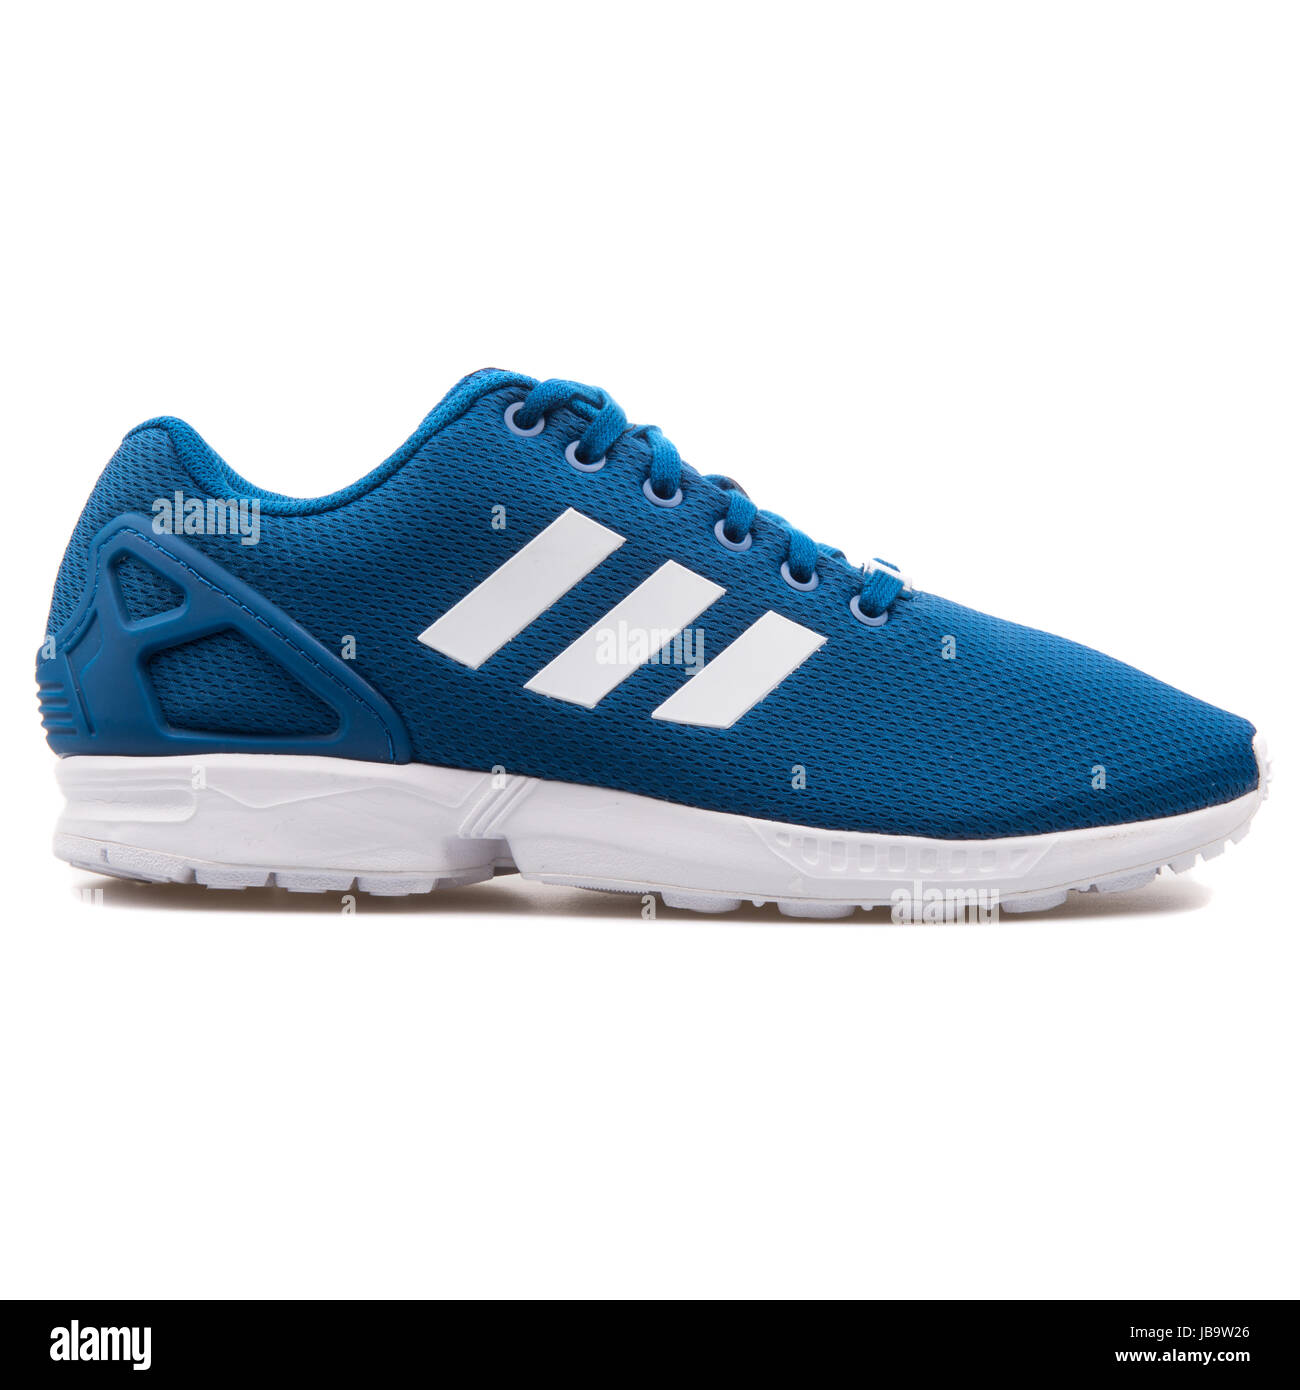 more photos fe25f 84def Adidas ZX Flux Blue Men's Running Shoes - AF6344 Stock Photo ...